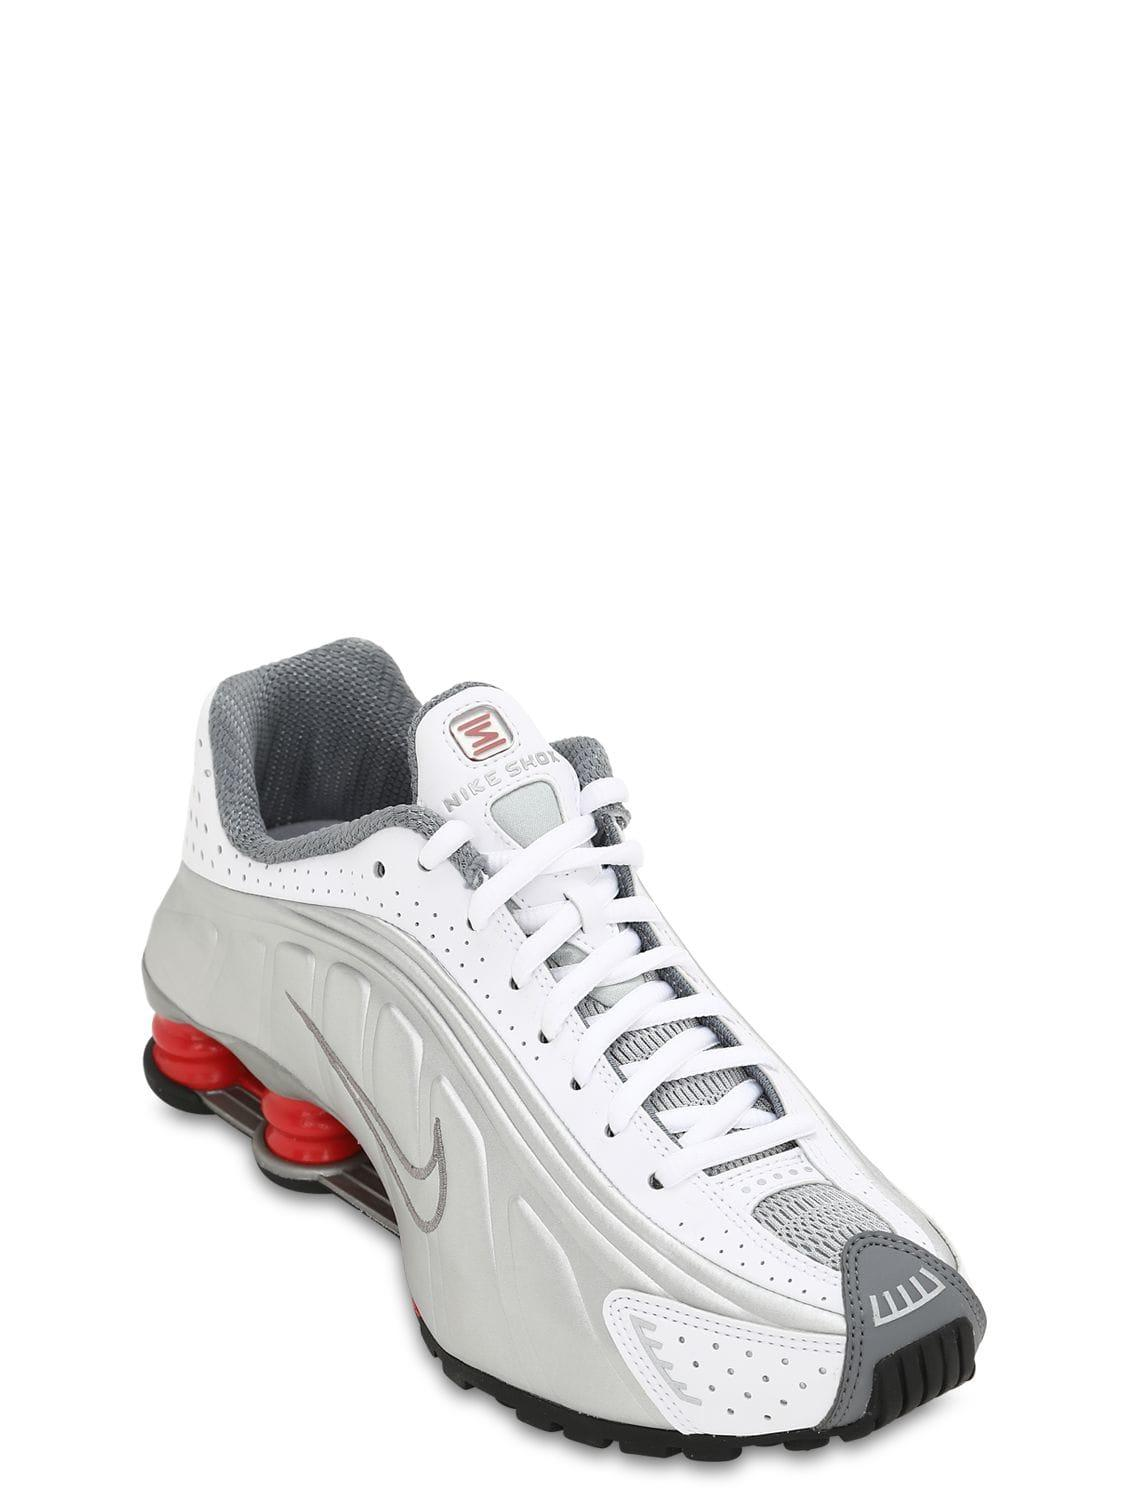 big sale 6028c acc5f Lyst - Nike Shox R4 Sneakers in White